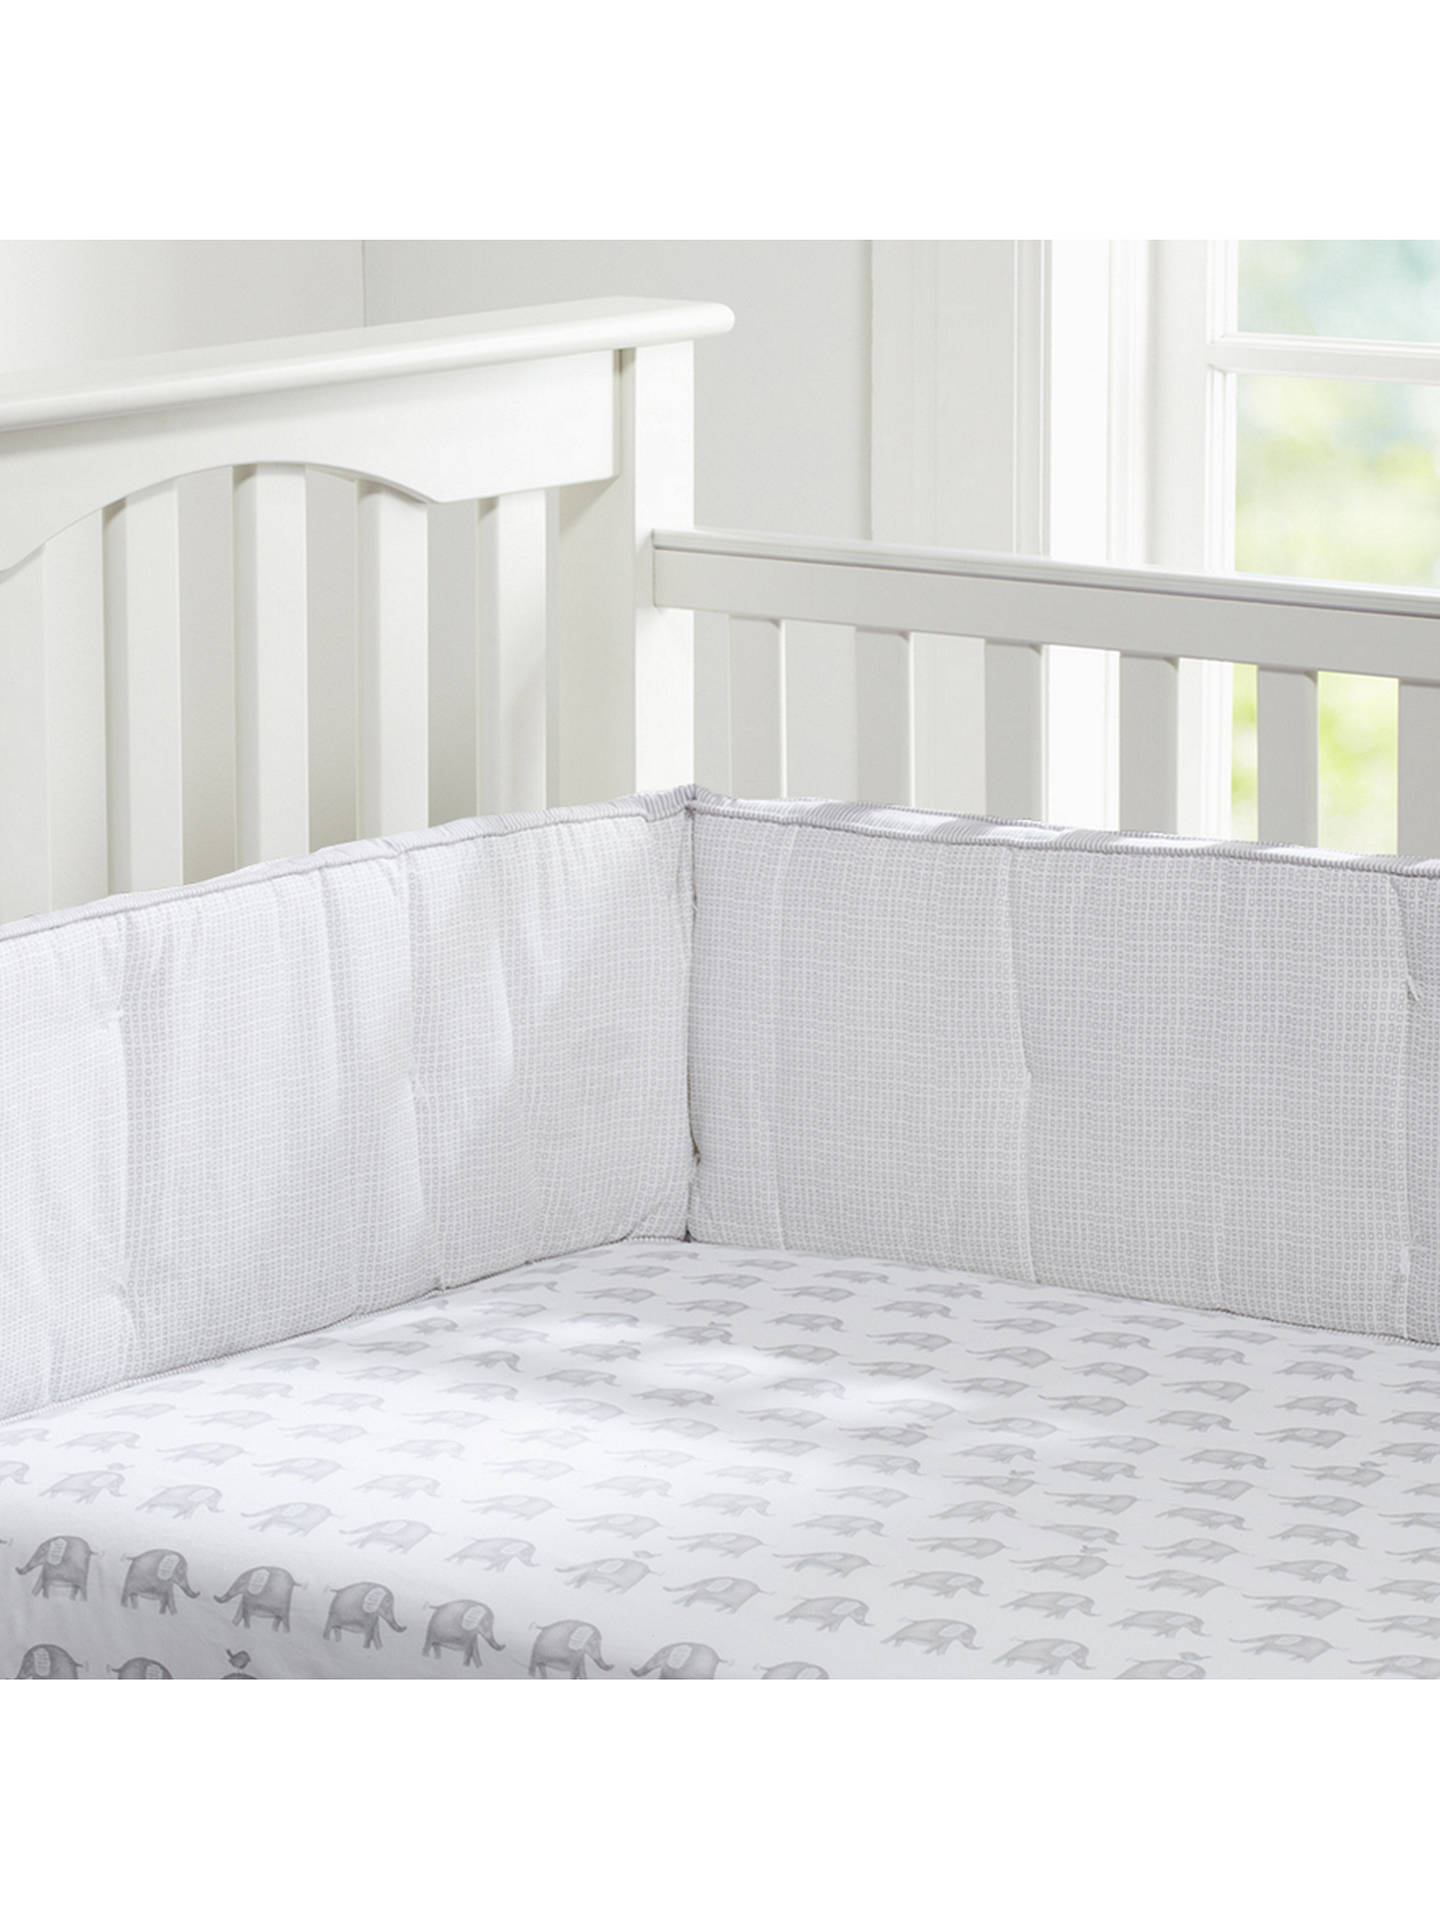 BuyPottery Barn Kids Taylor Elephant Fitted Crib Sheet, Grey, 70 x 132cm Online at johnlewis.com